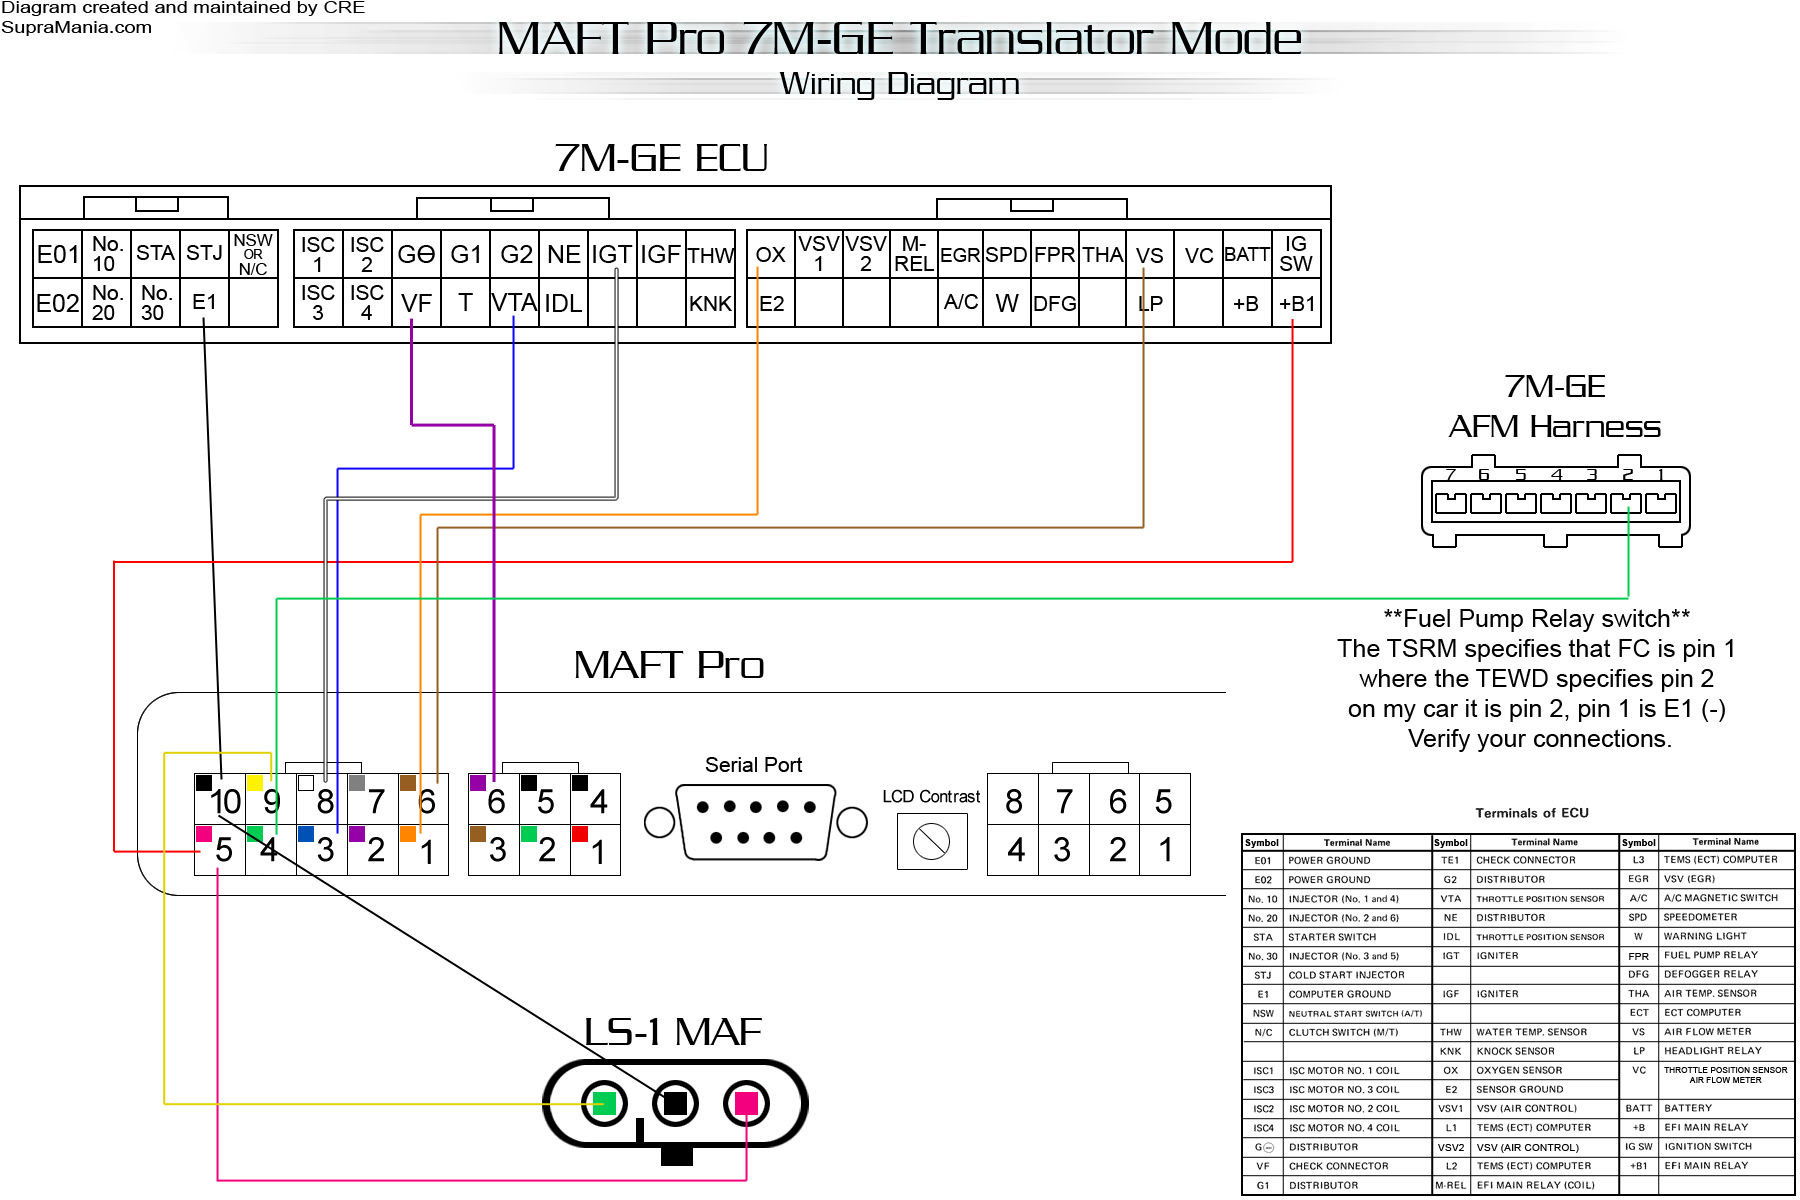 Dtc P0101 How To Service Ls1 Maf Manual Guide